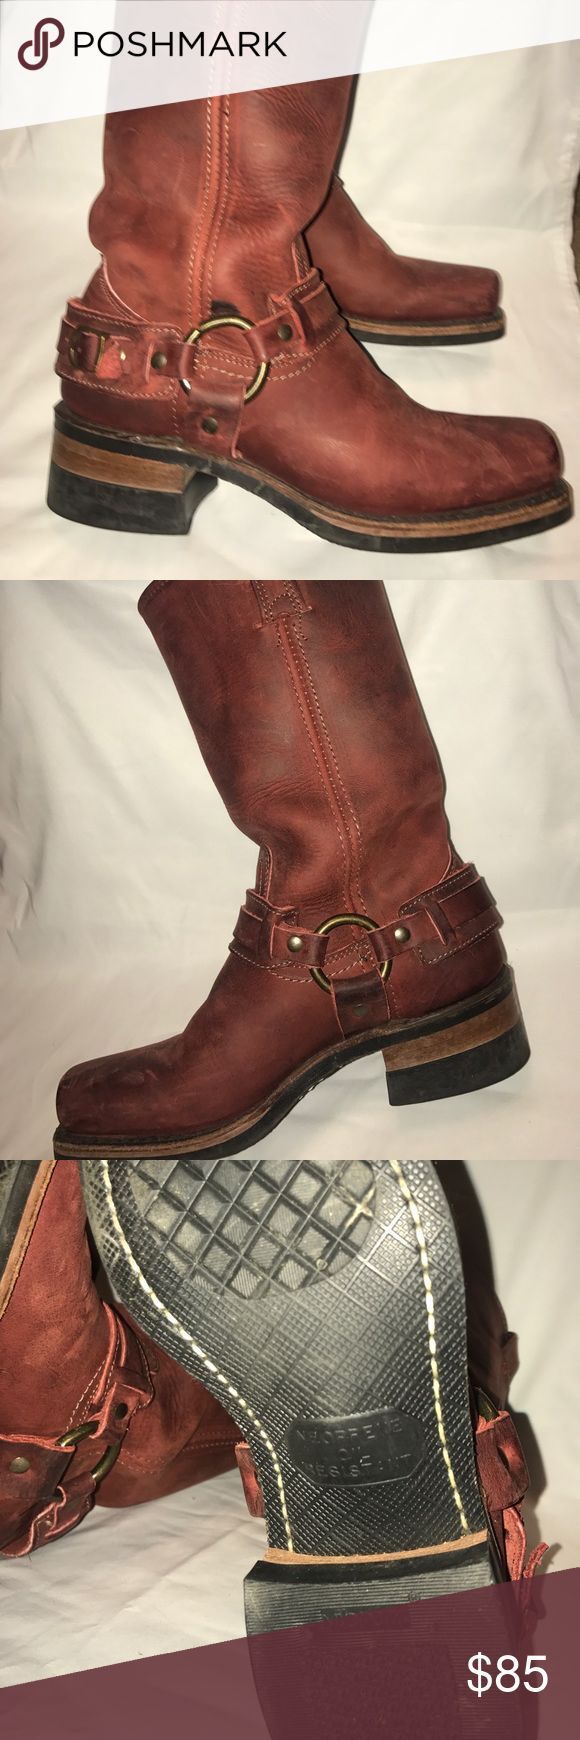 Women's Frye Harness Boots - EUC!!! Women's Frye Harness Boots in EXCELLENT USED CONDITION! These boots are originally $328 on The Frye Company Website. They are a deep red color and have been kept in excellent condition with very few signs of wear! Women's size 7! Frye Shoes